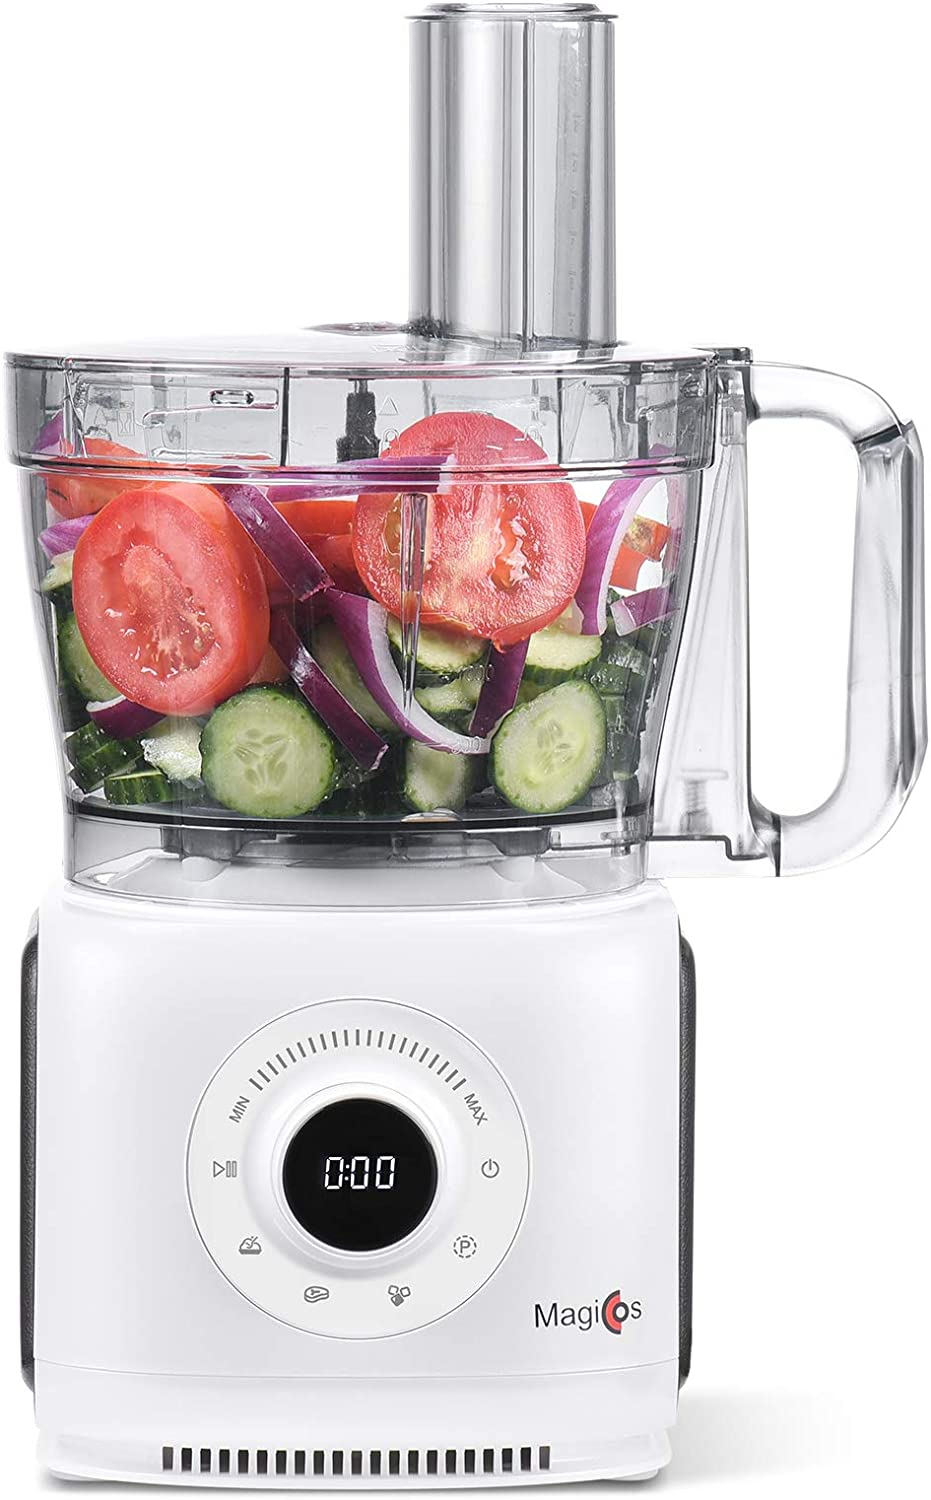 14 Cup Electric Food Processor, MAGICCOS 1000Watt Digital Food Chopper, With 7 Chopping Kneading Shredding Slicing and Mashing Blades,7 Variable Speeds Plus Pulse, Timer, Pear White Coating